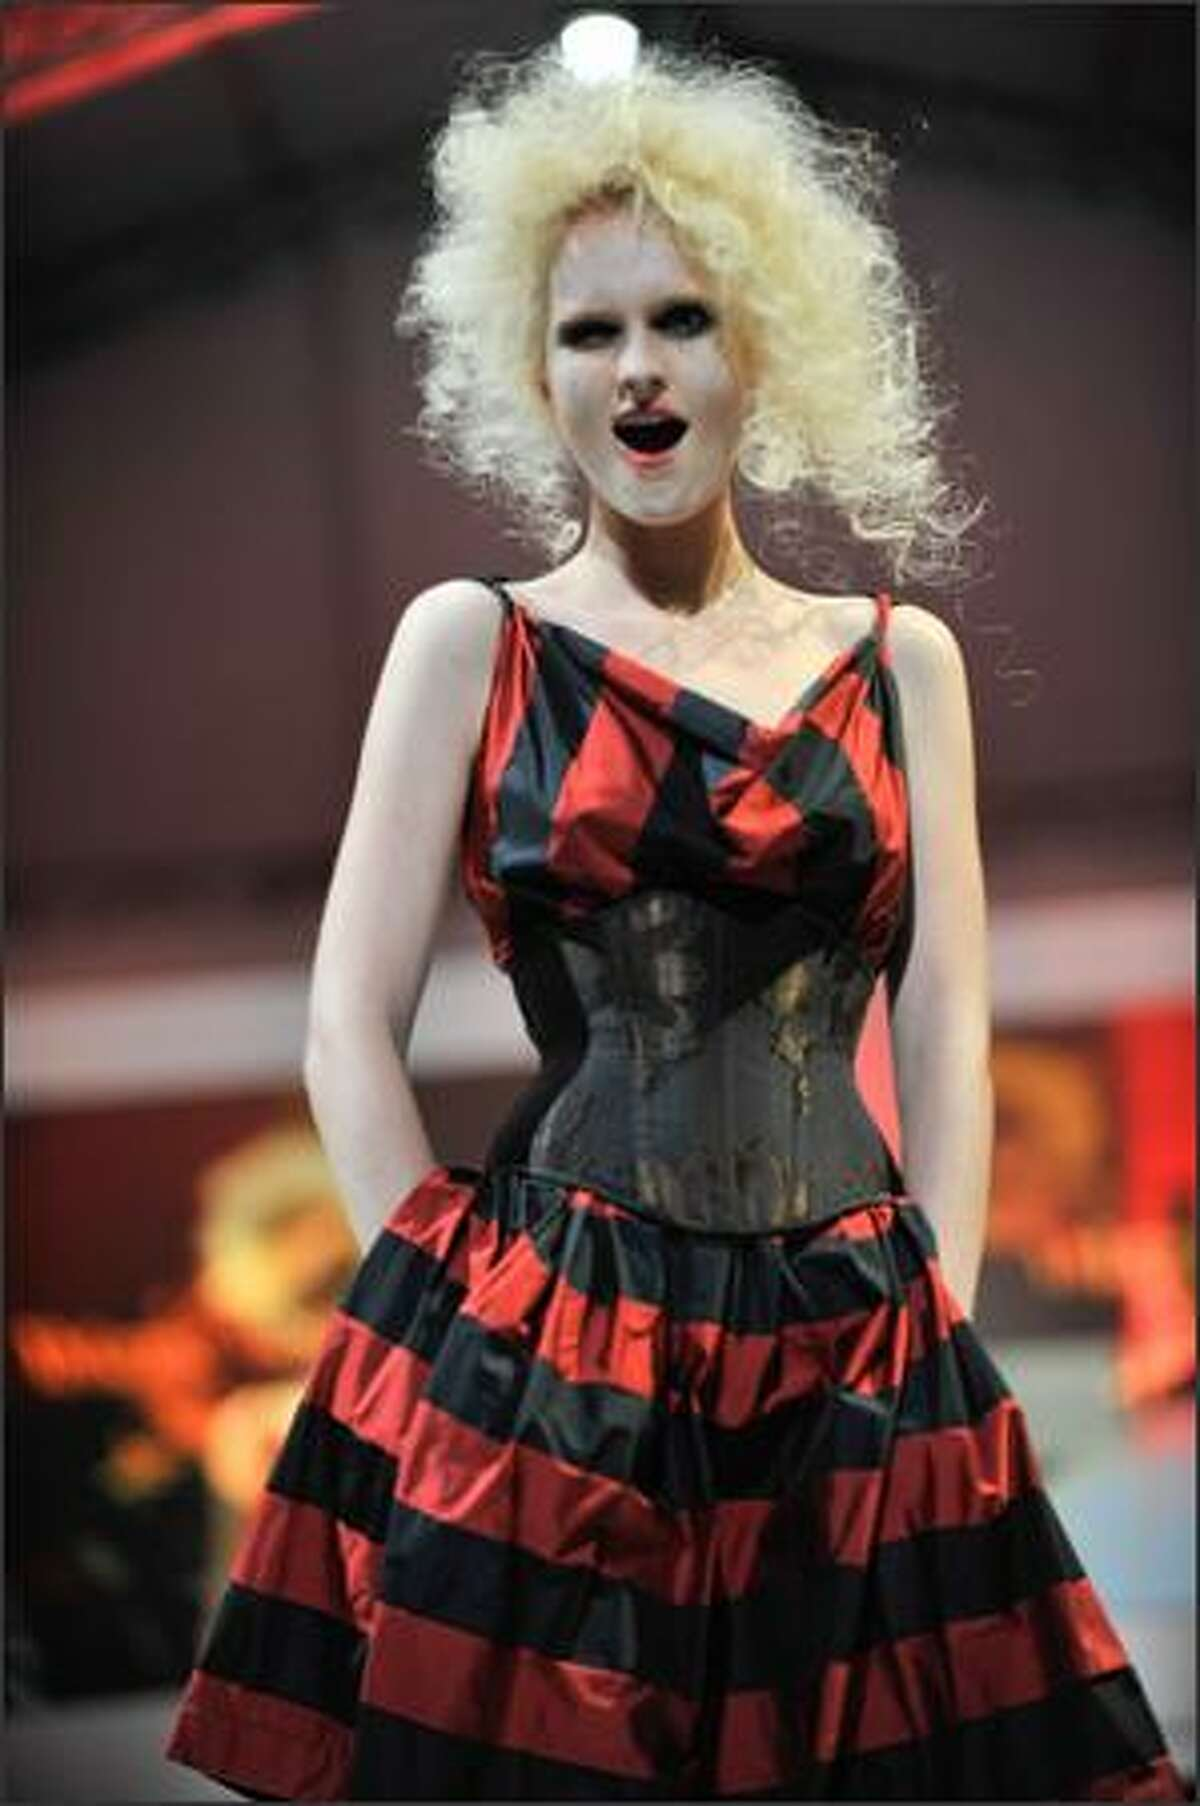 A model showcases designs by Vivienne Westwood for her Autumn/Winter 2009 collection on the catwalk at the Ngee Ann City Civic Plaza on Day 5 - and the last day - of the Audi Fashion Festival Singapore on Sunday in Singapore.